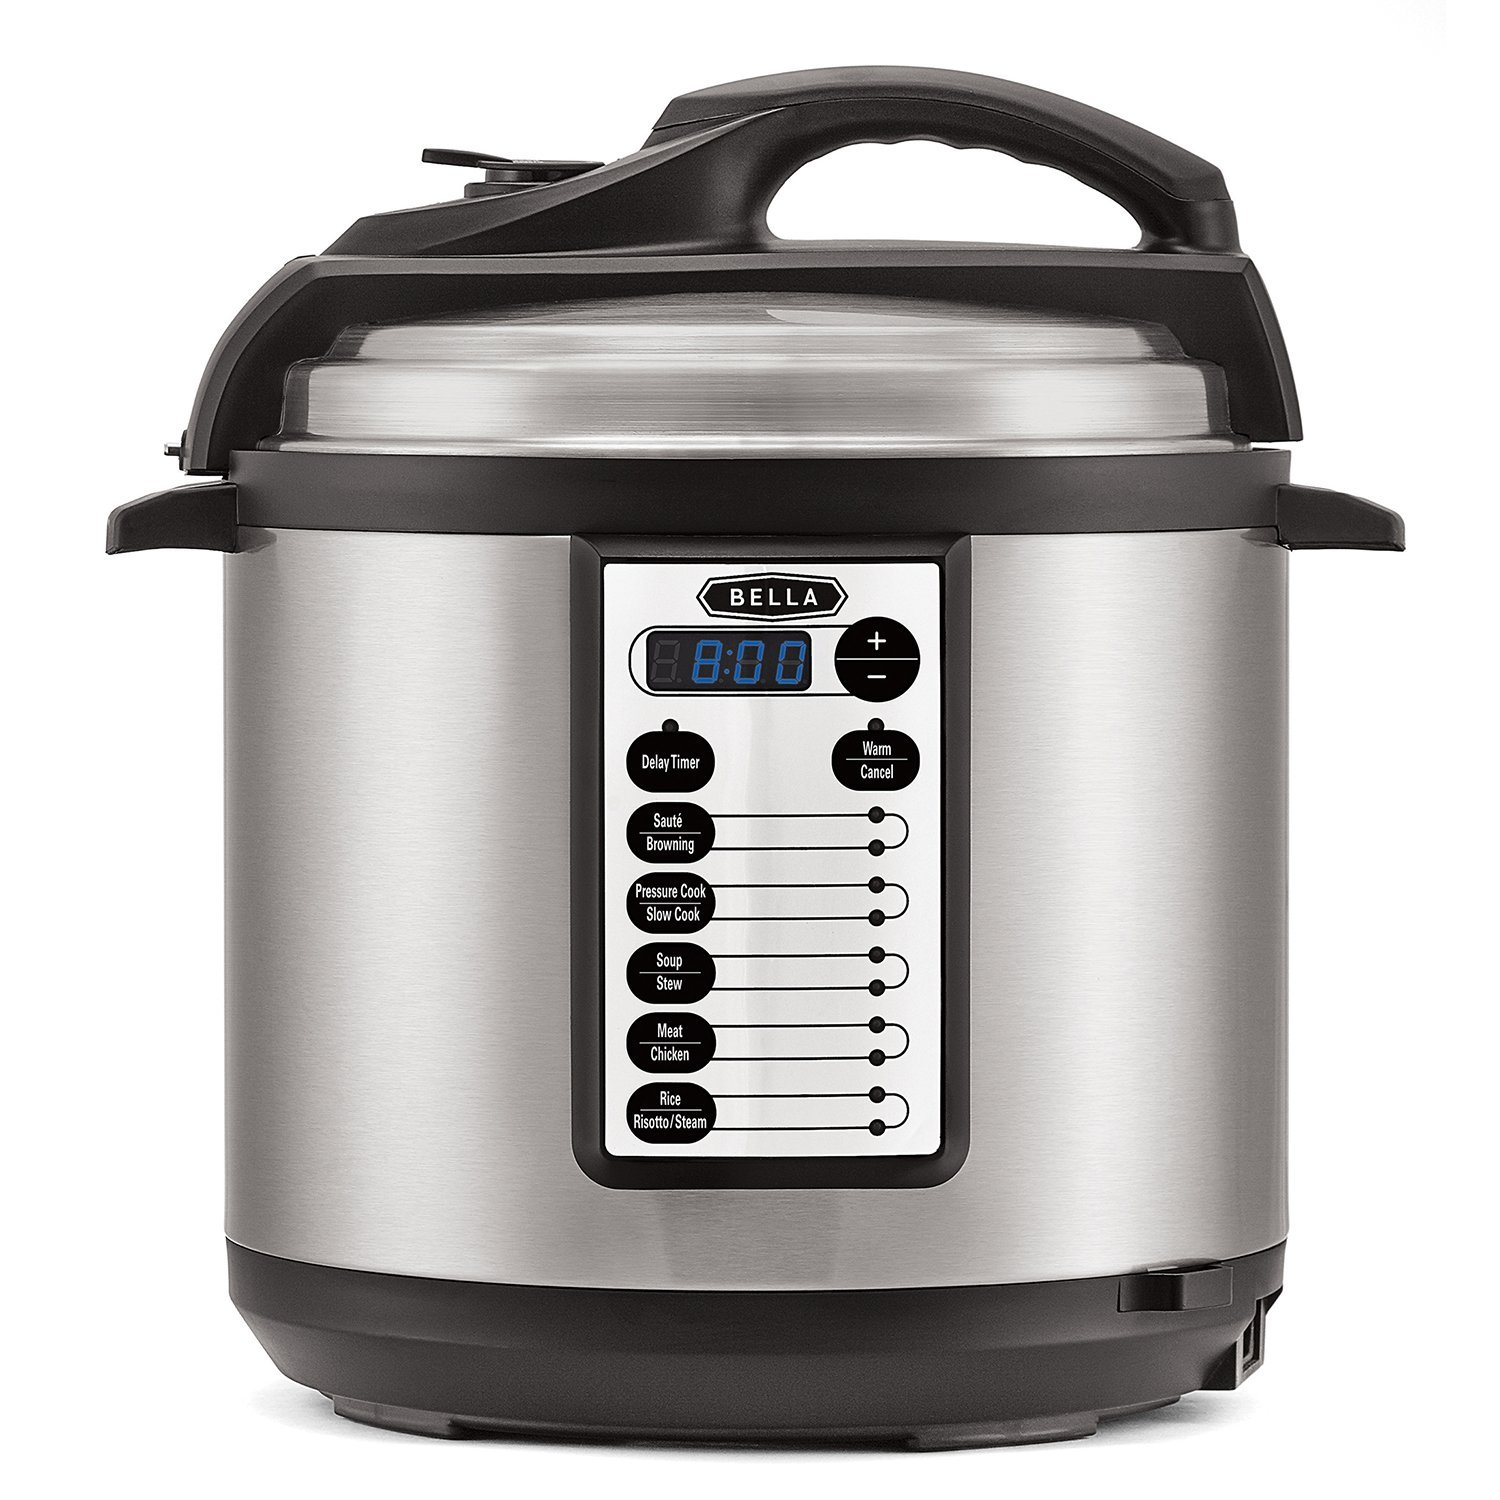 BELLA 6 Quart 10-In-1 Multi-Use Programmable Pressure Cooker, Slow Cooker, Rice Cooker, Steamer, Sauté Warmer with Searing & Browning Feature, 1000 Watts (14467) BLA14467